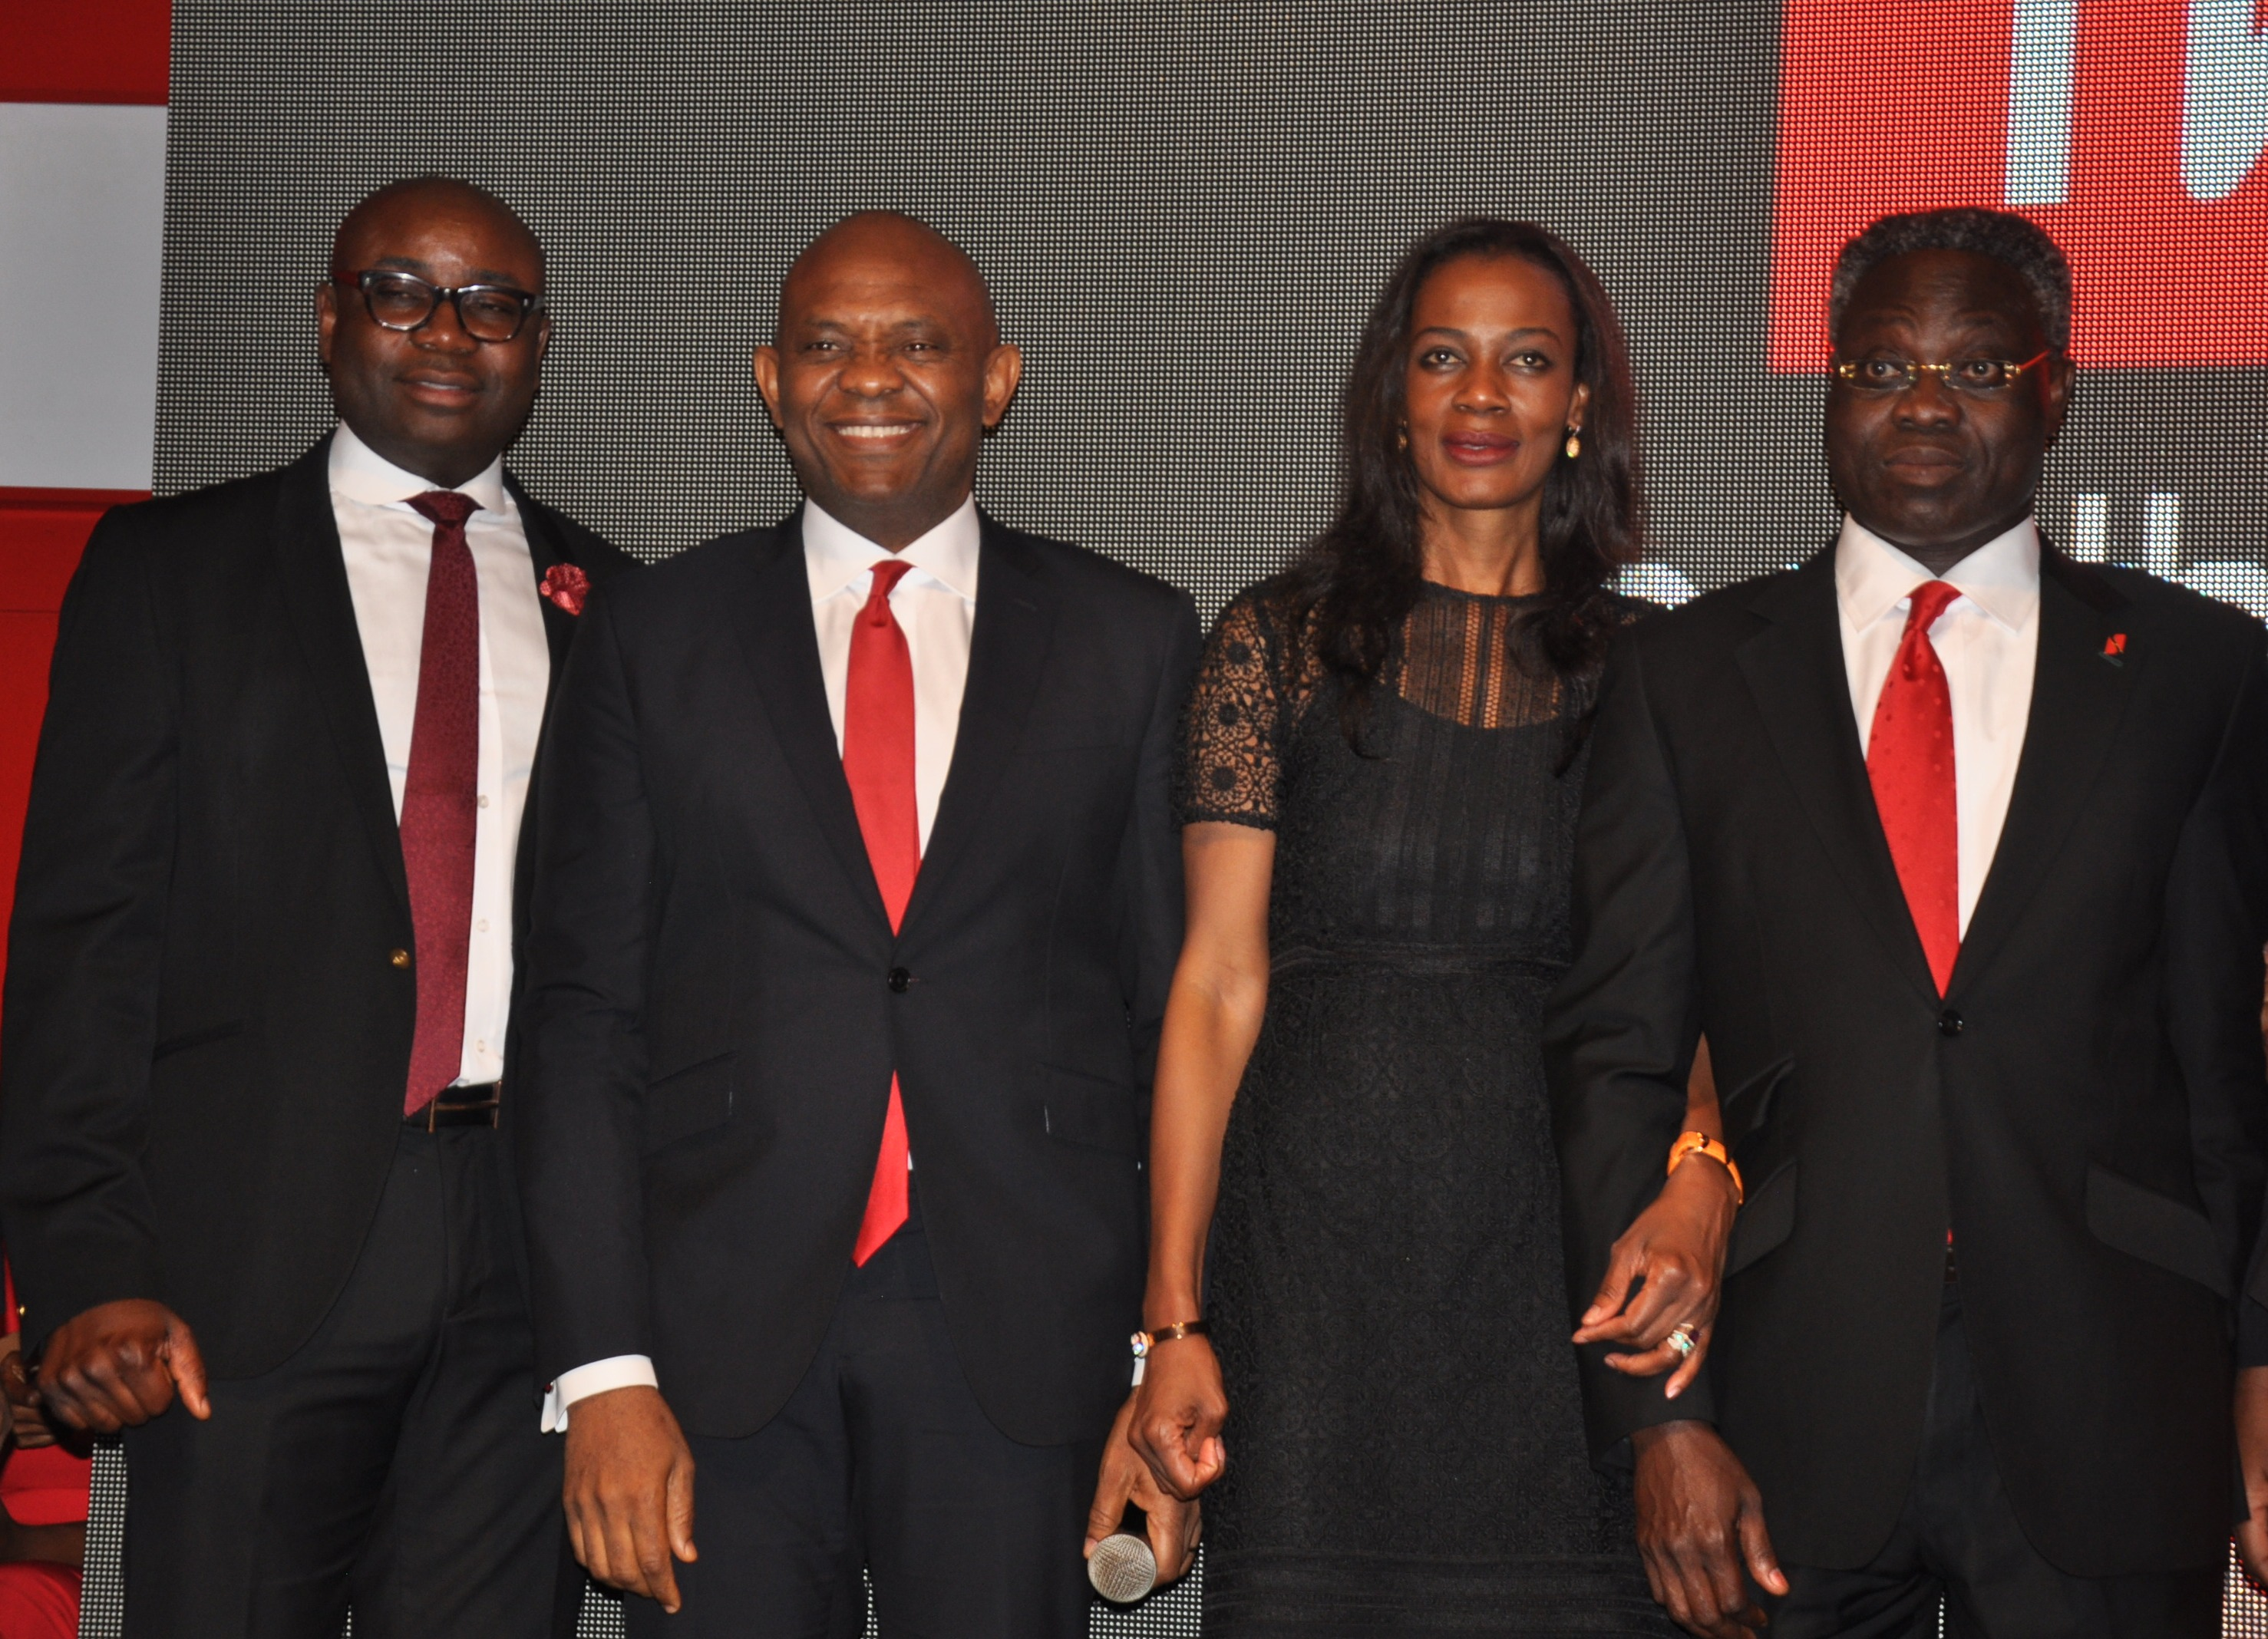 REDTV Launch Picture 1